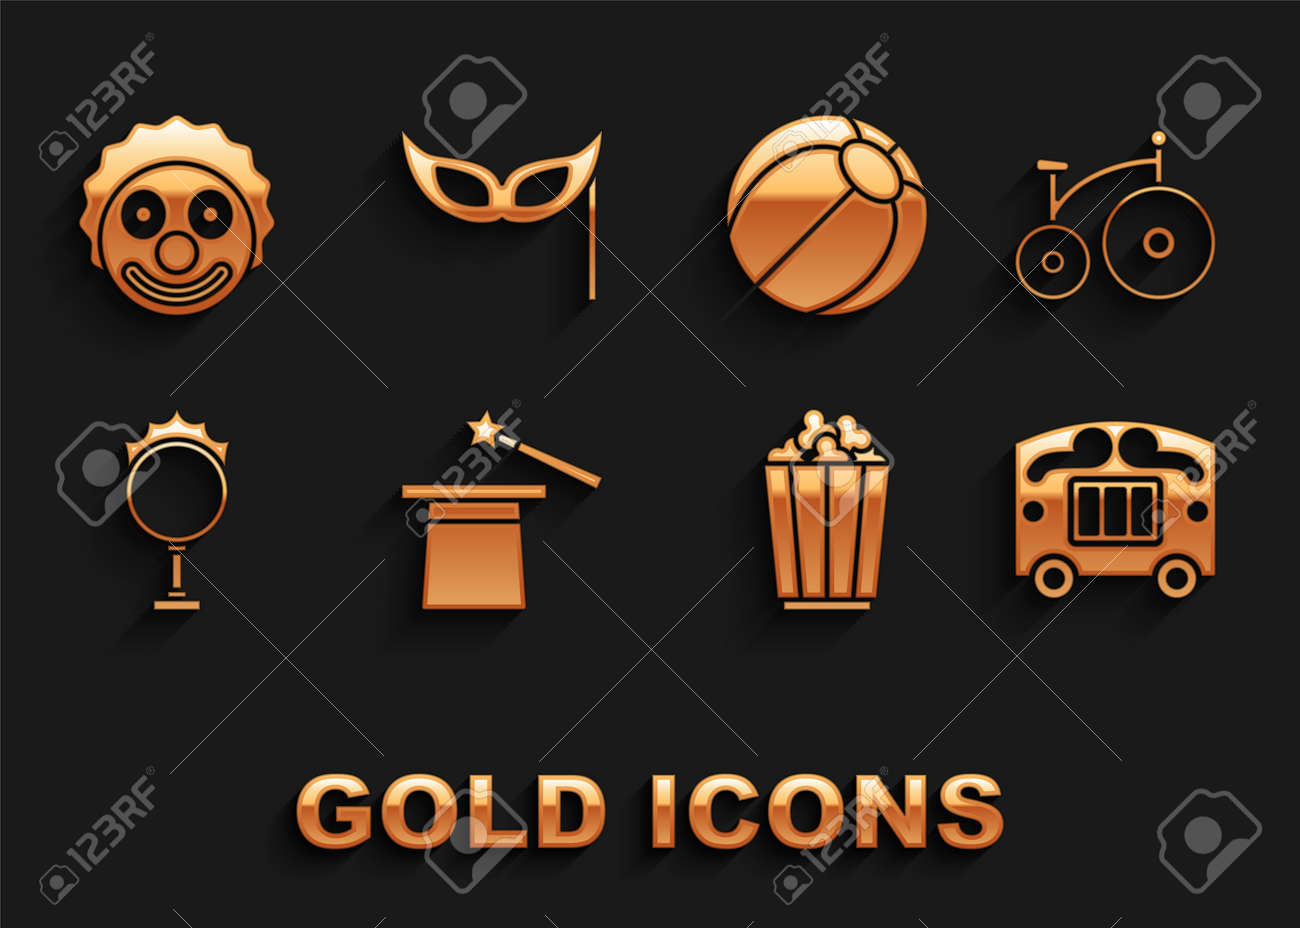 Set Magic hat and wand, Vintage bicycle, Circus wagon, Popcorn box, fire hoop, Beach ball, Clown head and Festive mask icon. Vector - 173396190